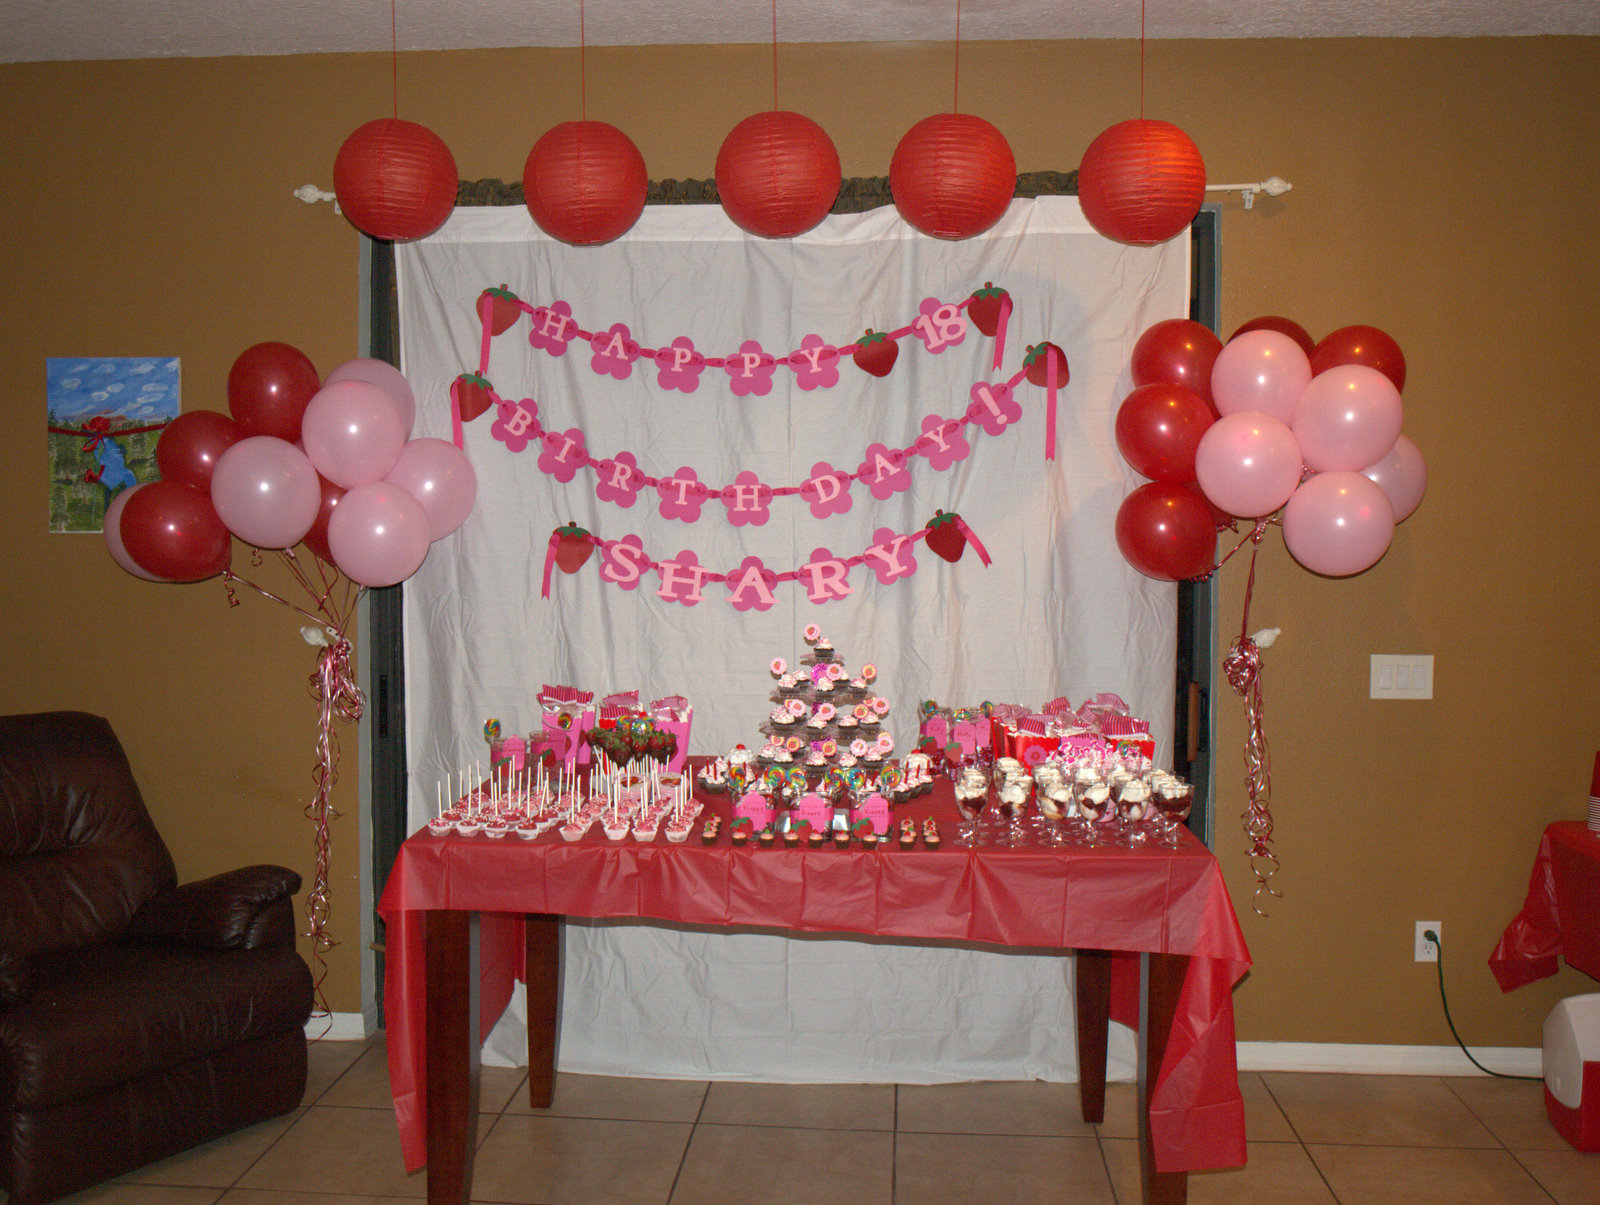 Juneills Parties Sweets Sharys Strawberry Shortcake Th - Table decoration ideas for 18th birthday